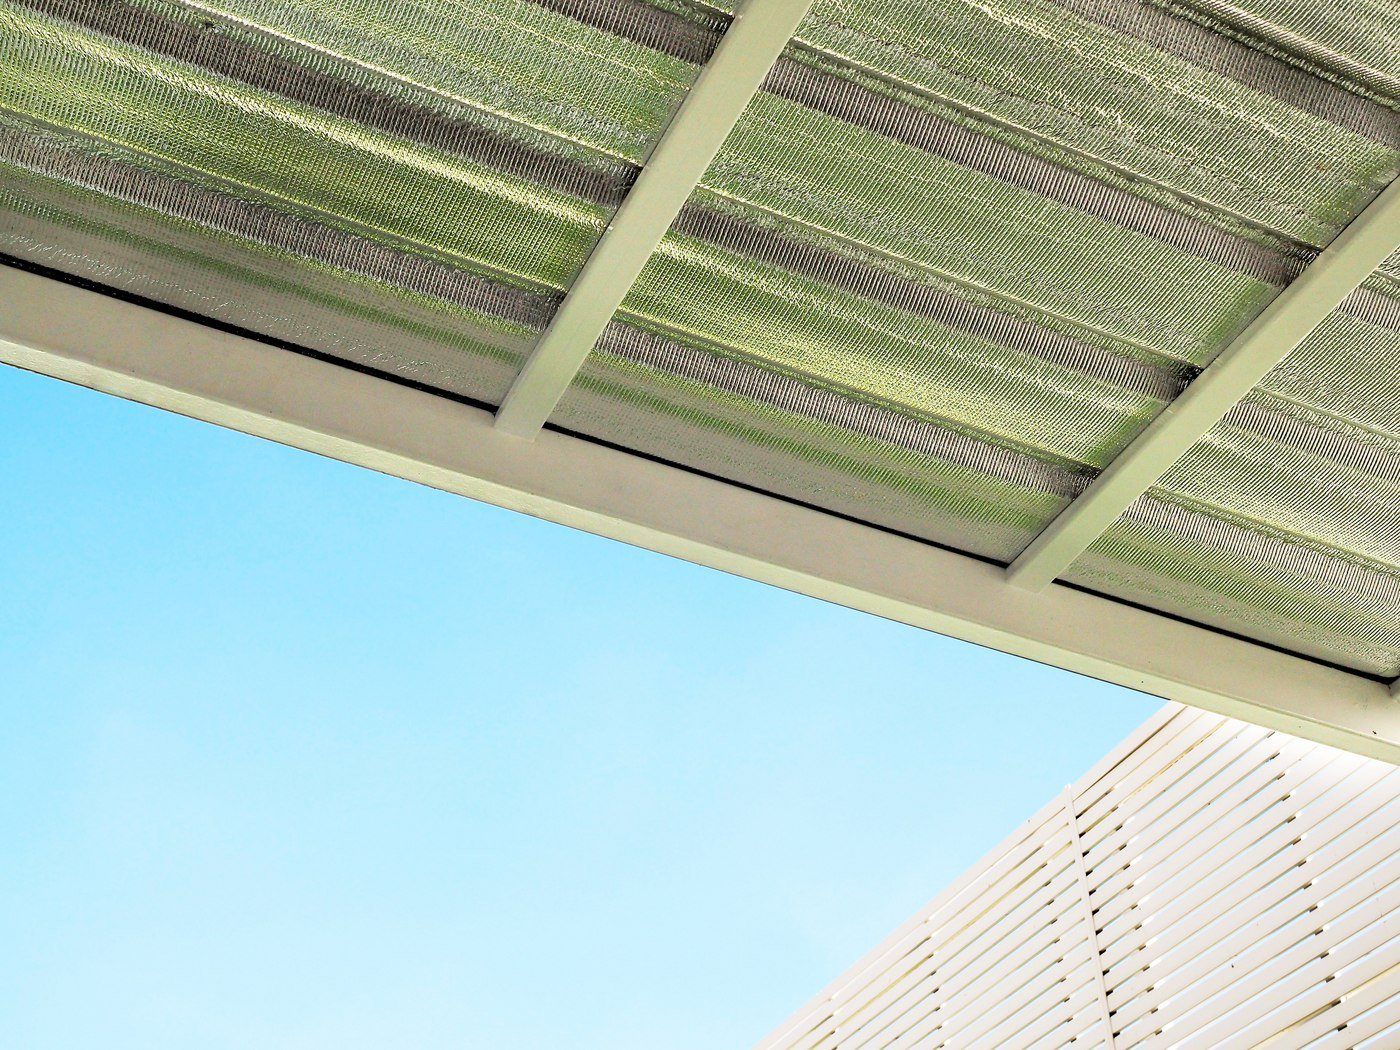 Metal Building Insulation: The 5 Best Options